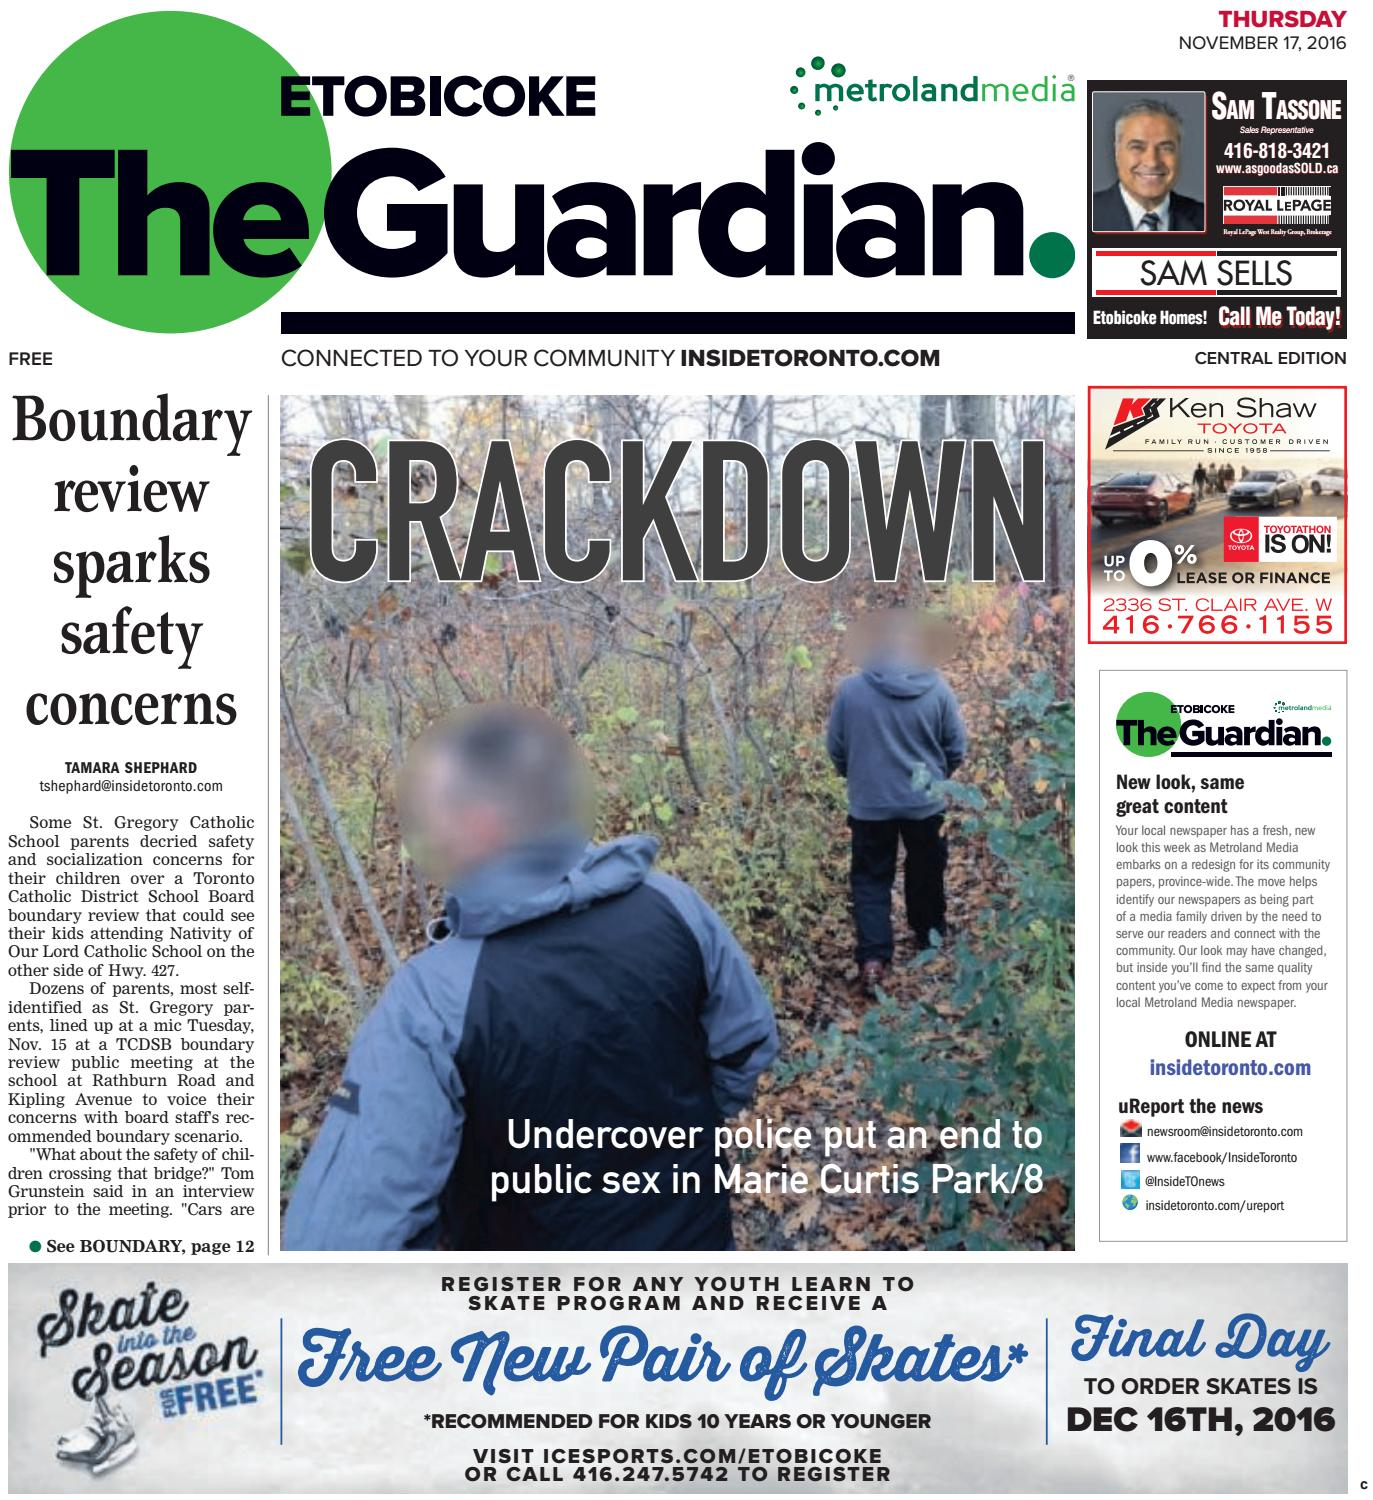 The etobicoke guardian central november 17 2016 by the etobicoke the etobicoke guardian central november 17 2016 by the etobicoke guardian issuu fandeluxe Gallery